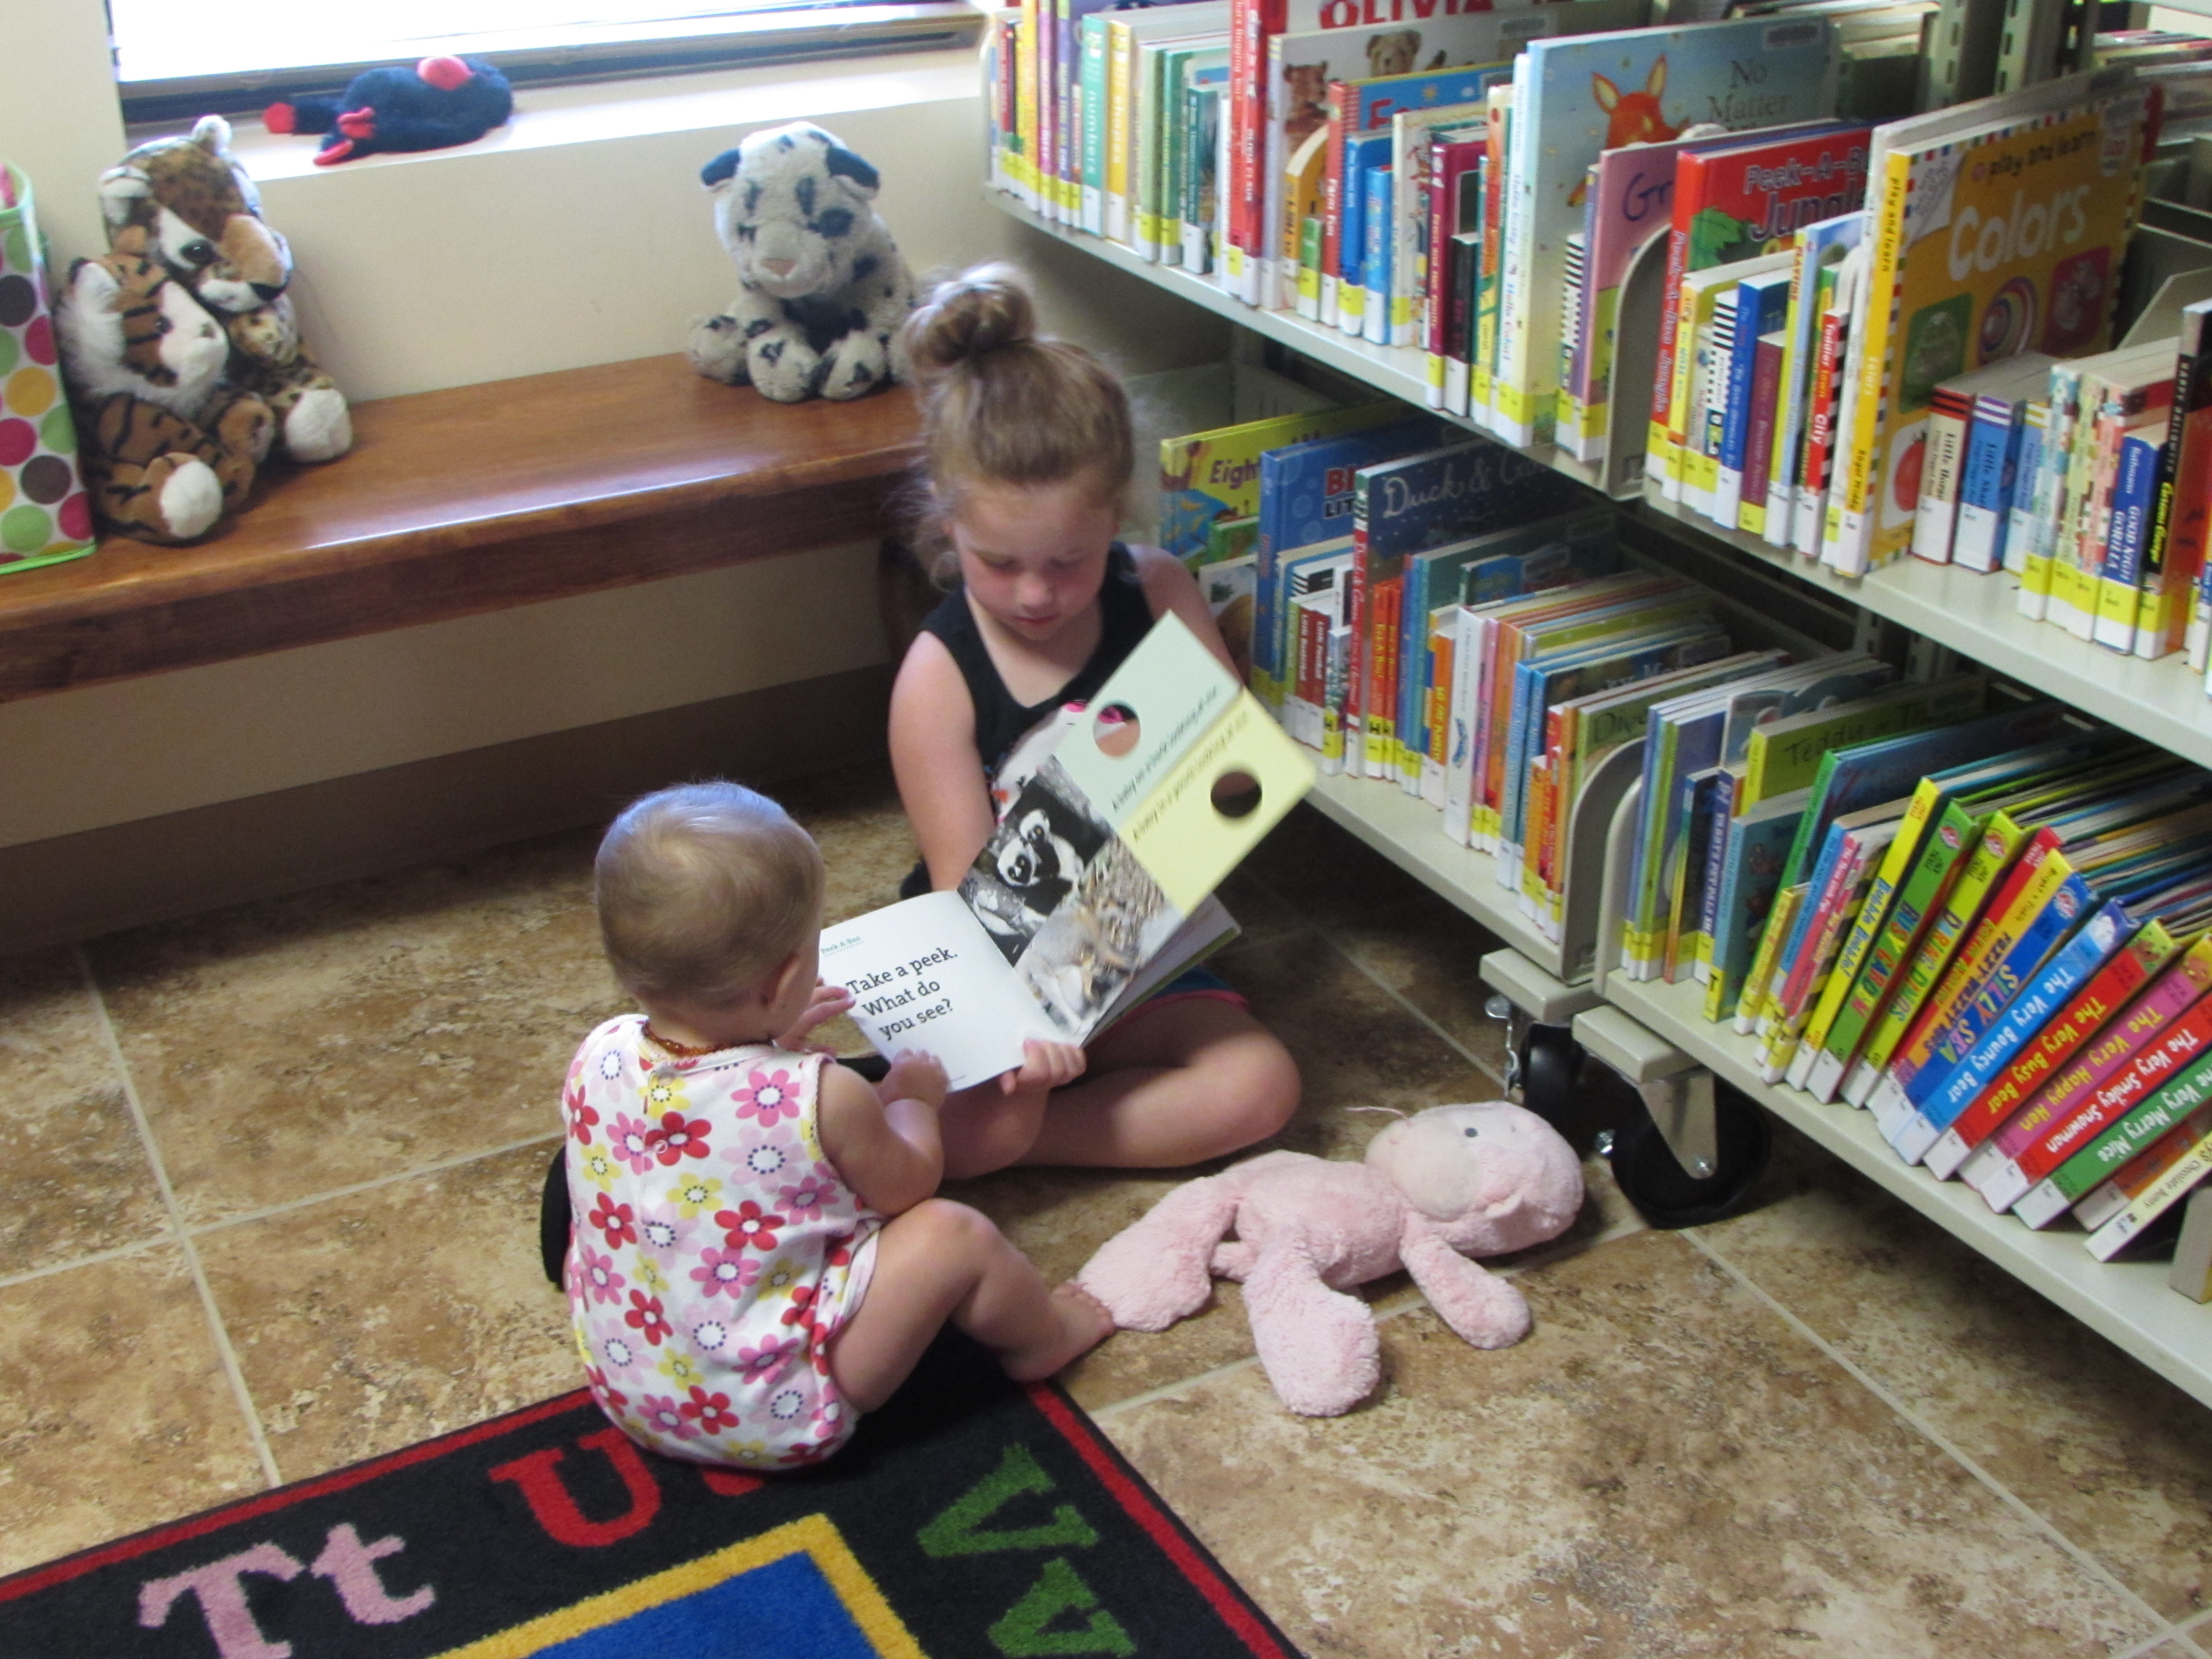 GL toddler & child reading